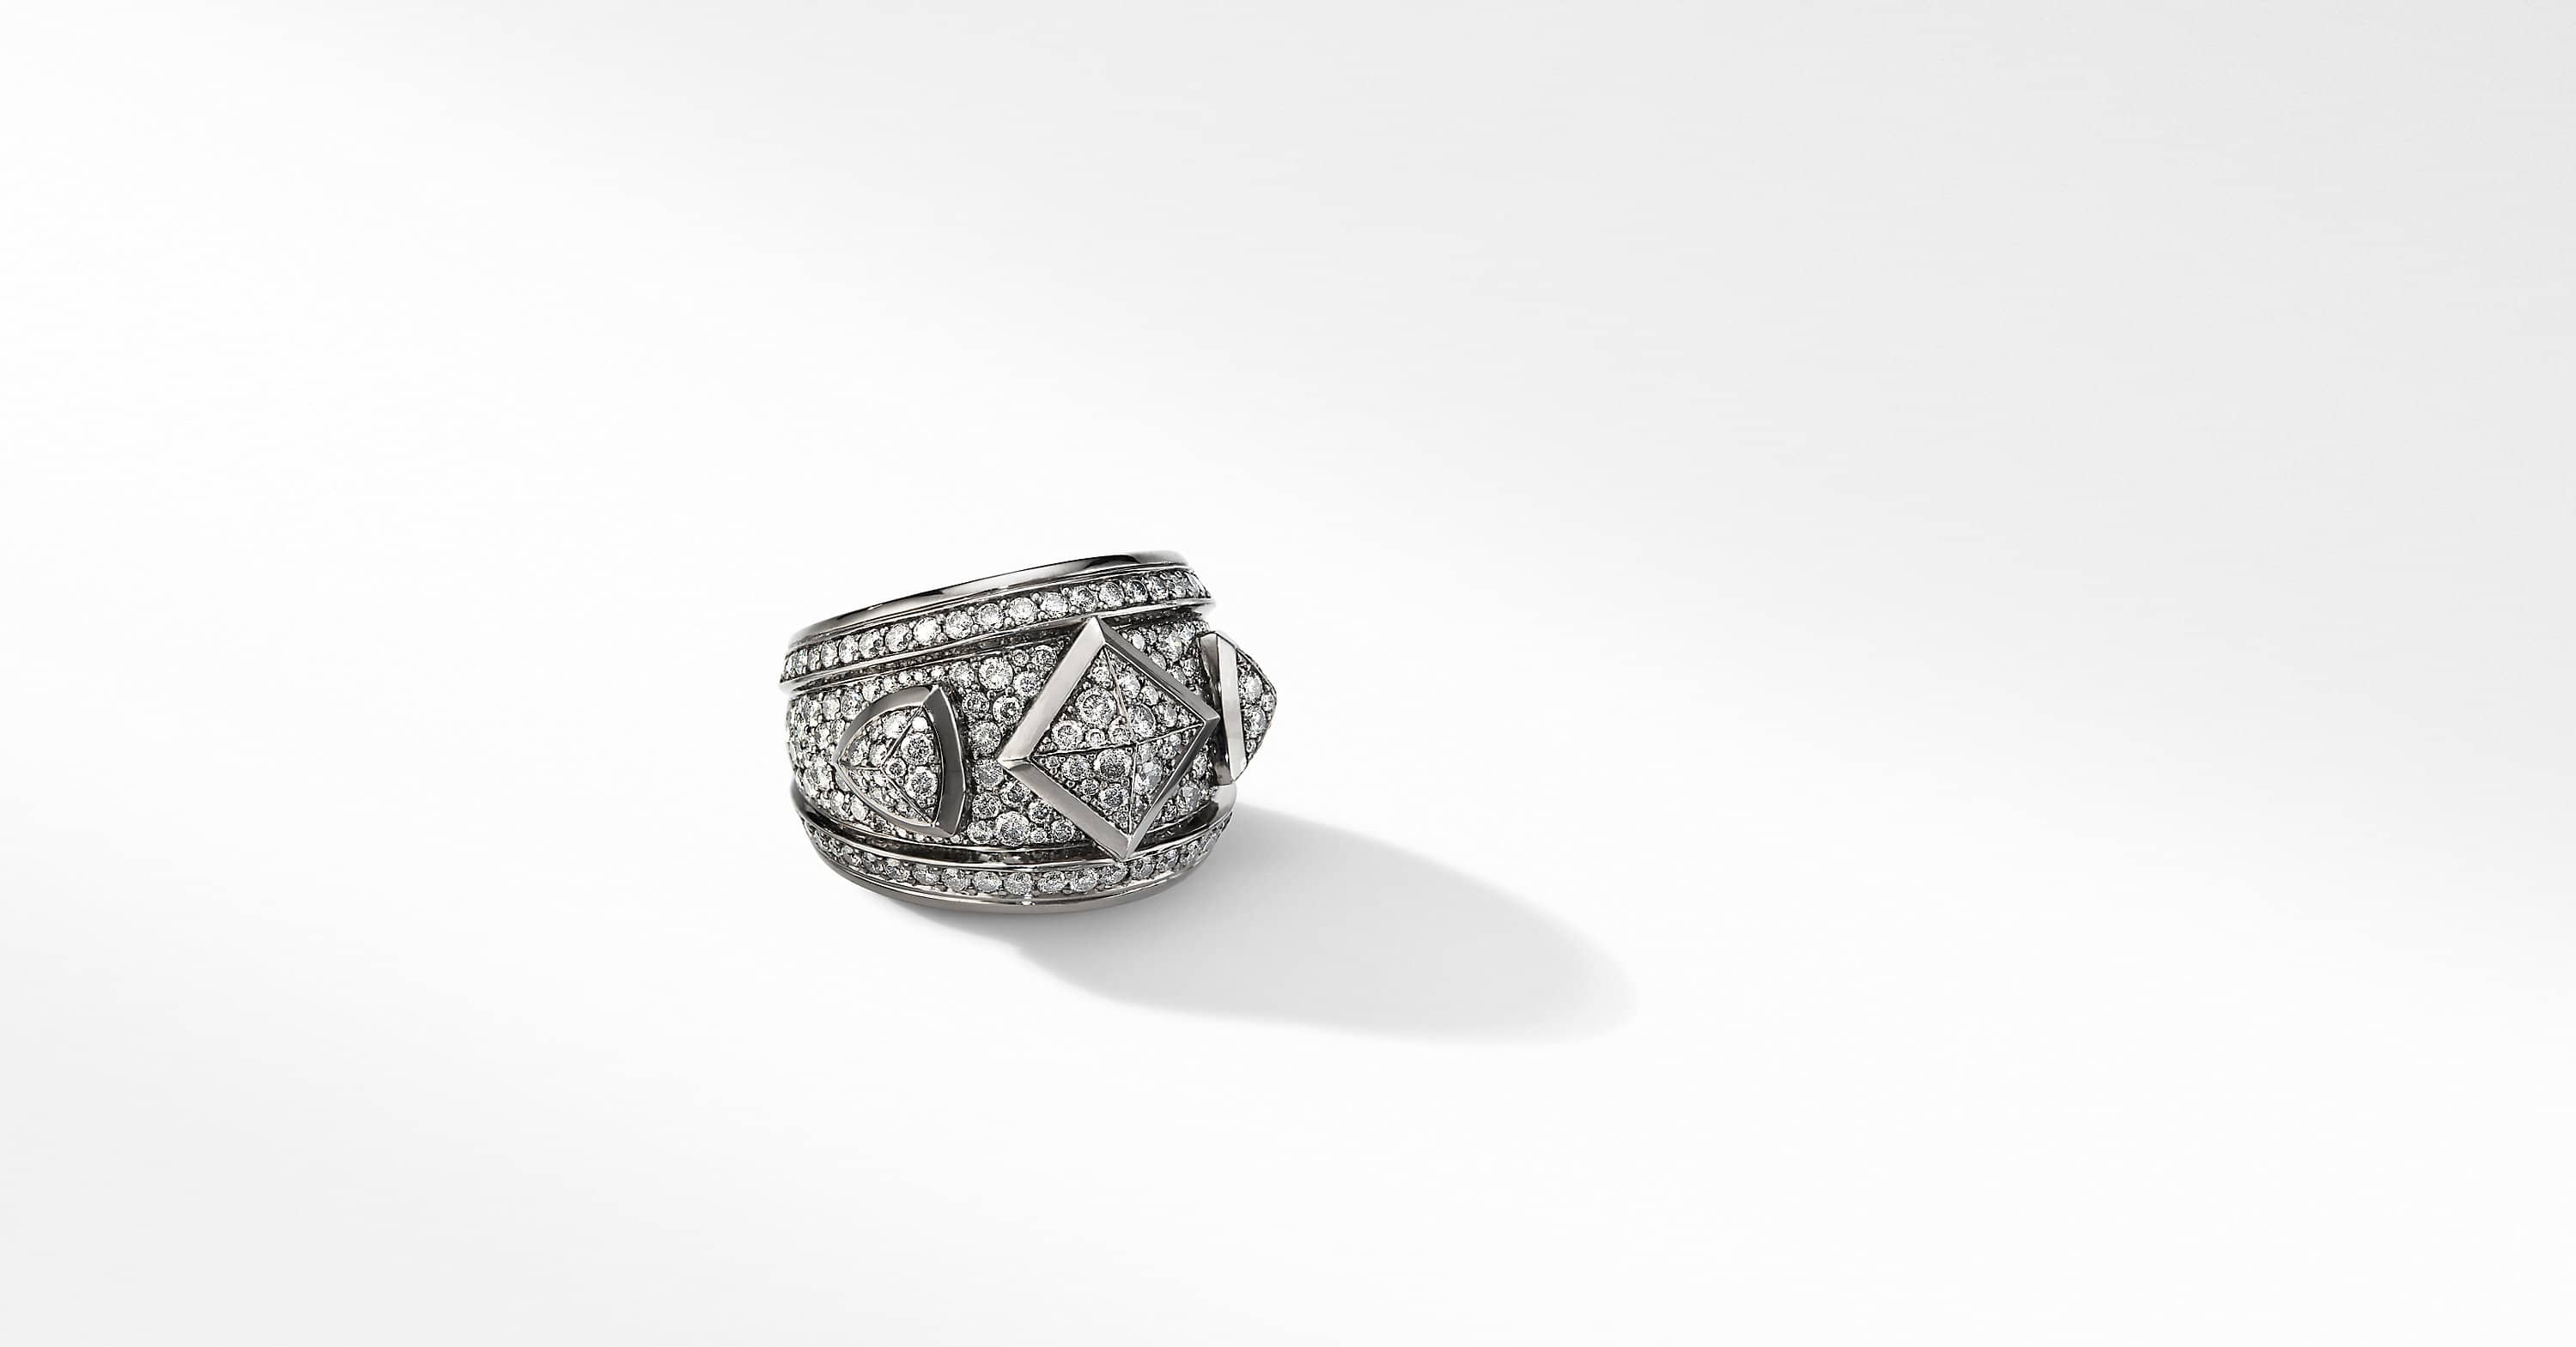 Renaissance Ring in 18K White Gold with Full Pavé